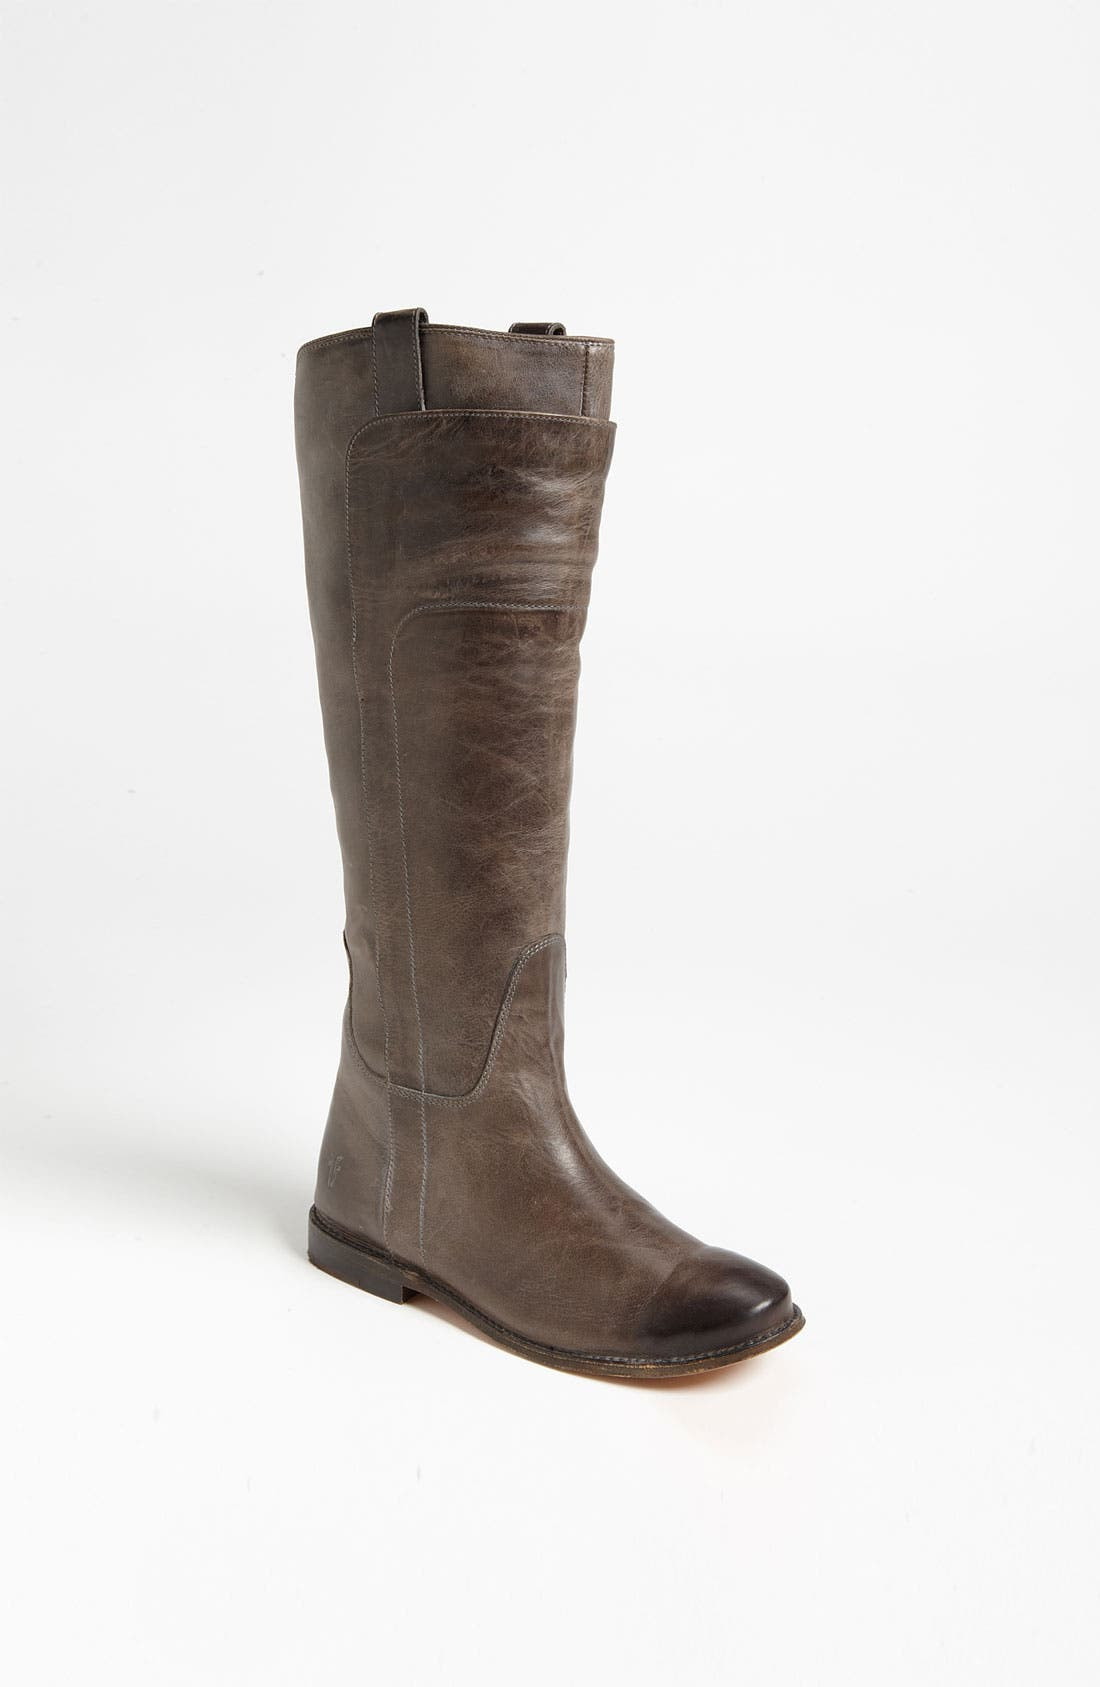 Alternate Image 1 Selected - Frye 'Paige' Tall Leather Riding Boot